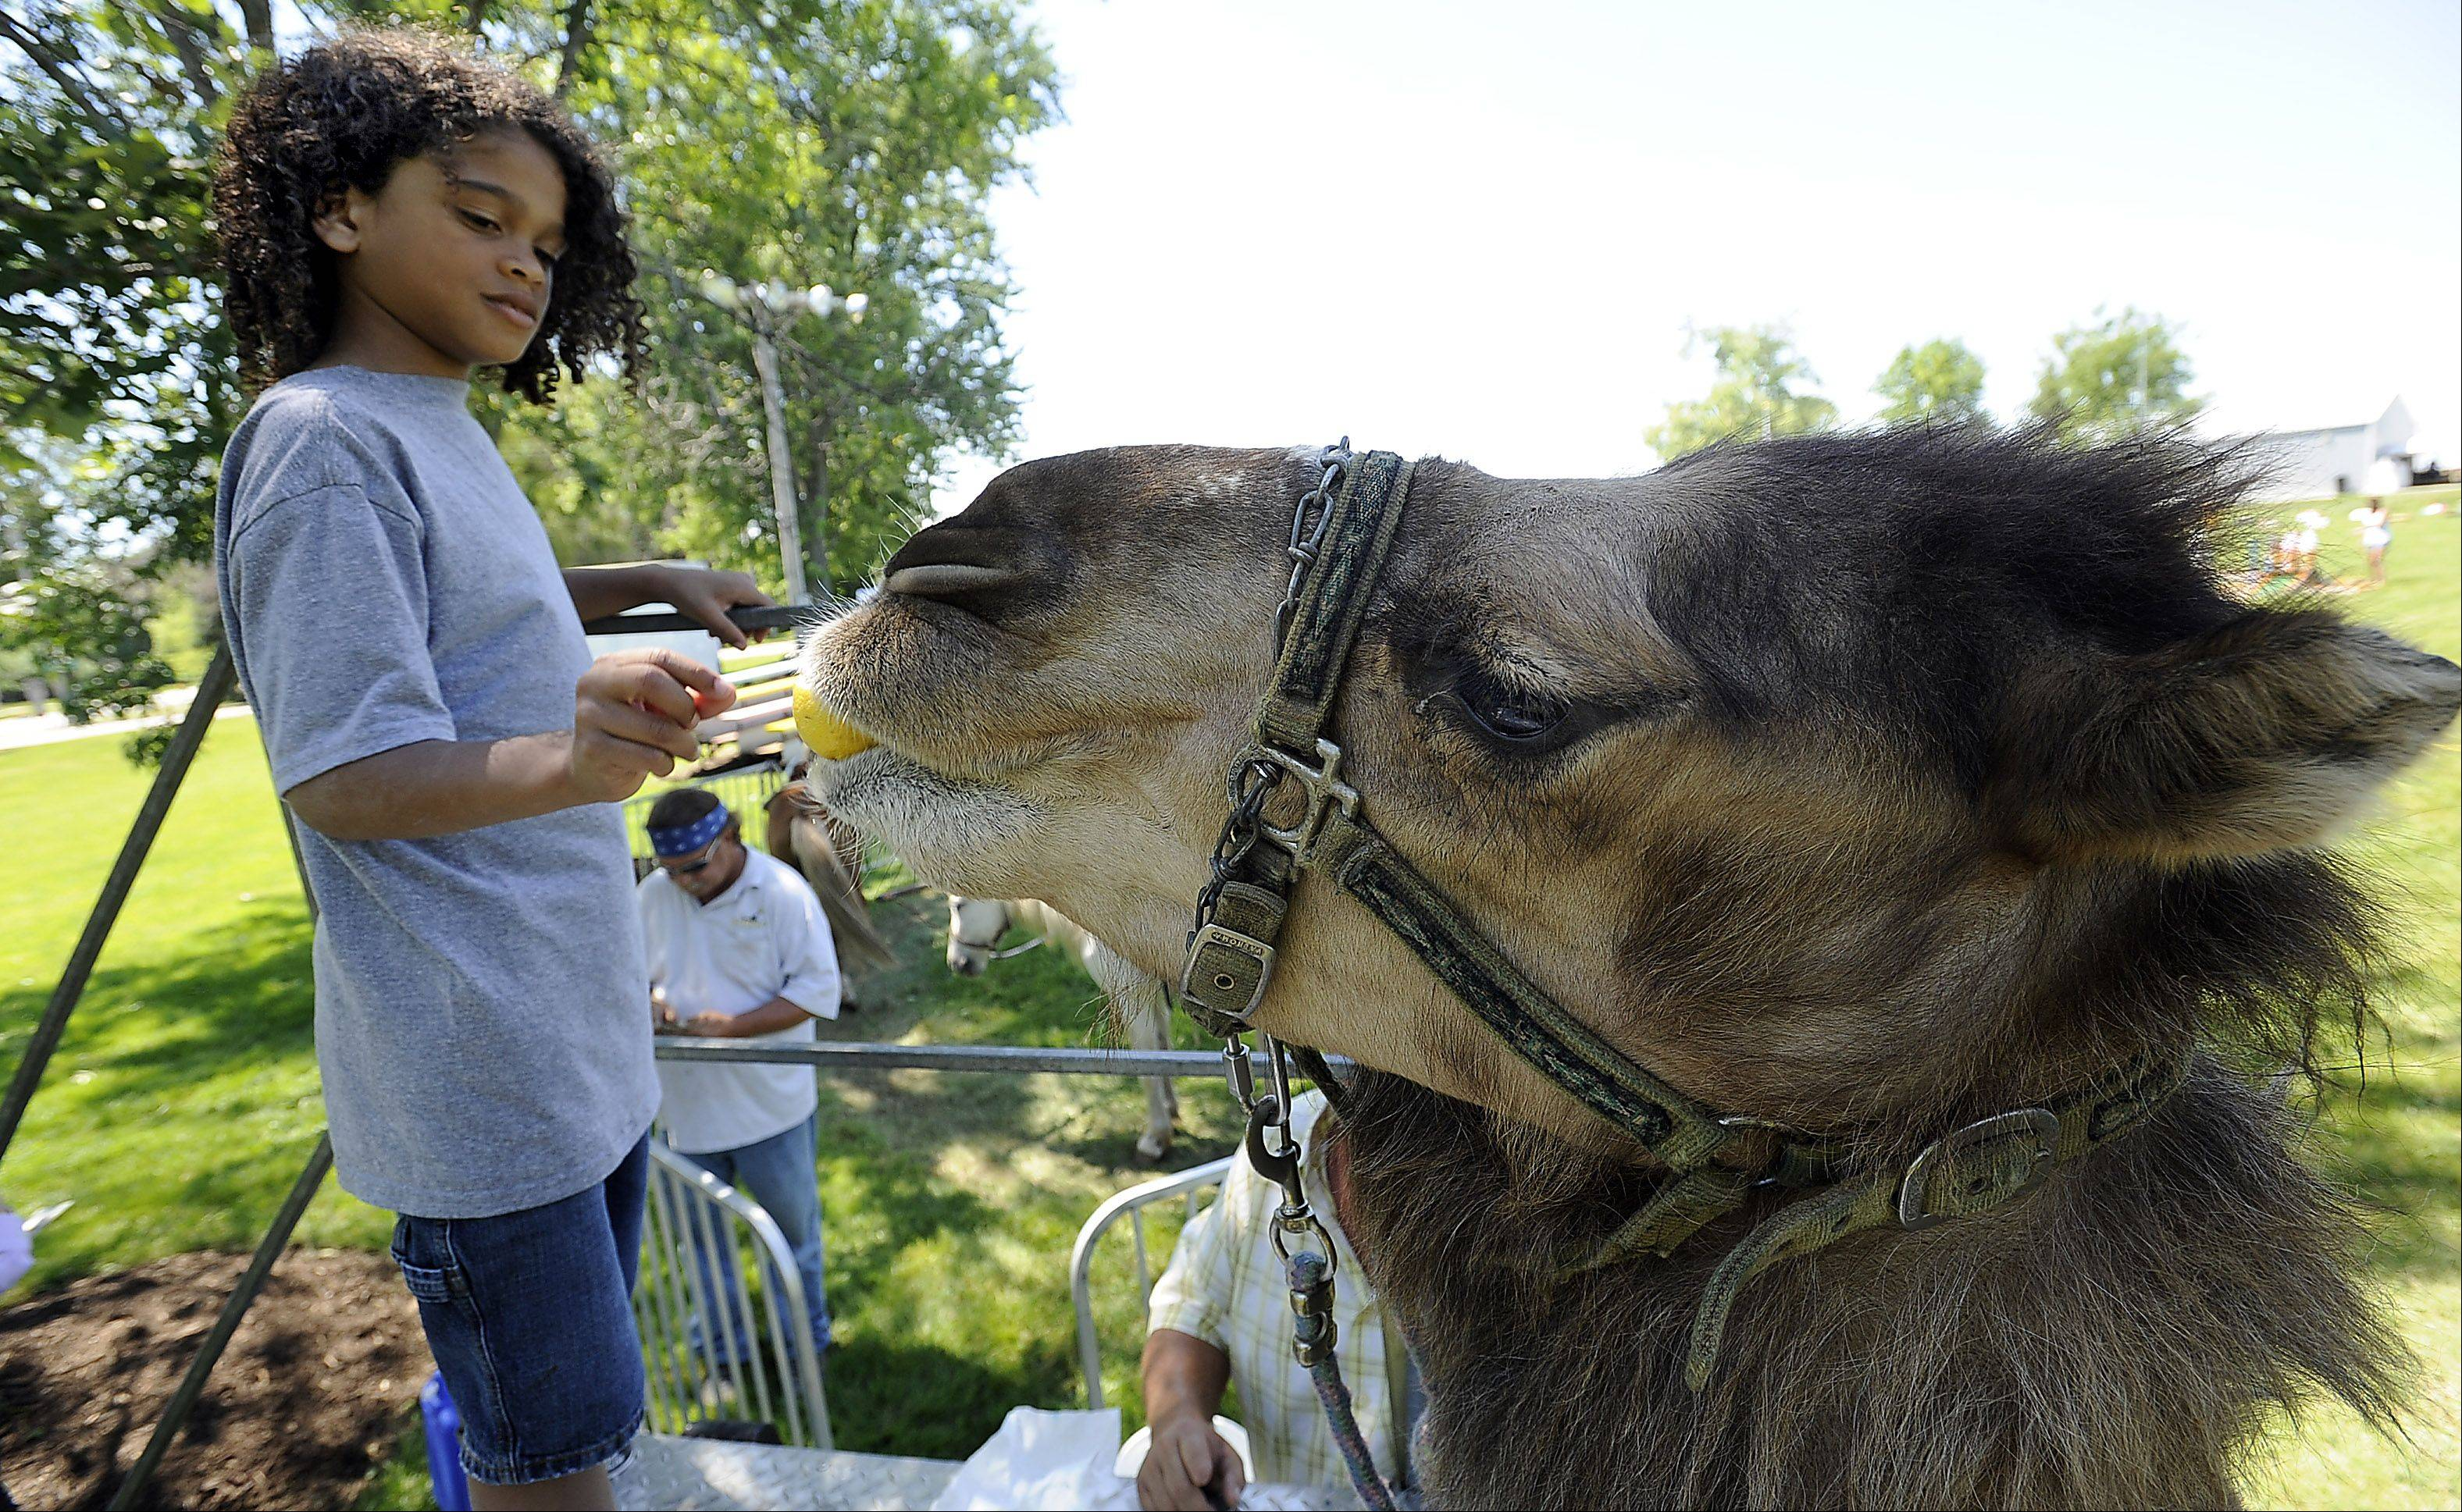 Matthew Marotta, 7, of North Chicago got a rare chance to feed Charley the camel a lemon, which camels love to eat, at the Grandwood Park Summerfest on Saturday.